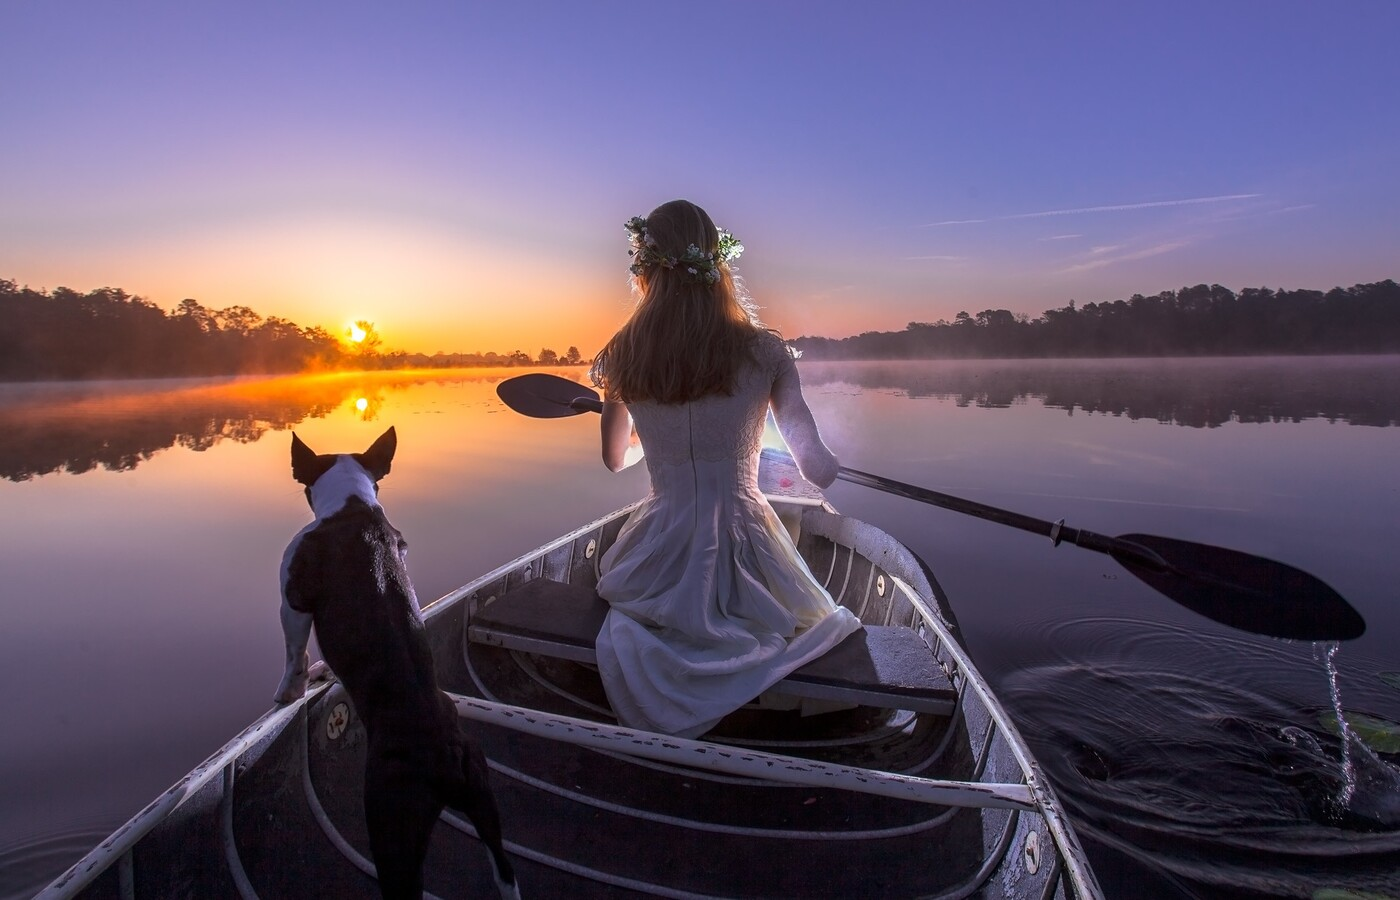 bride-with-dog-on-boat-av.jpg